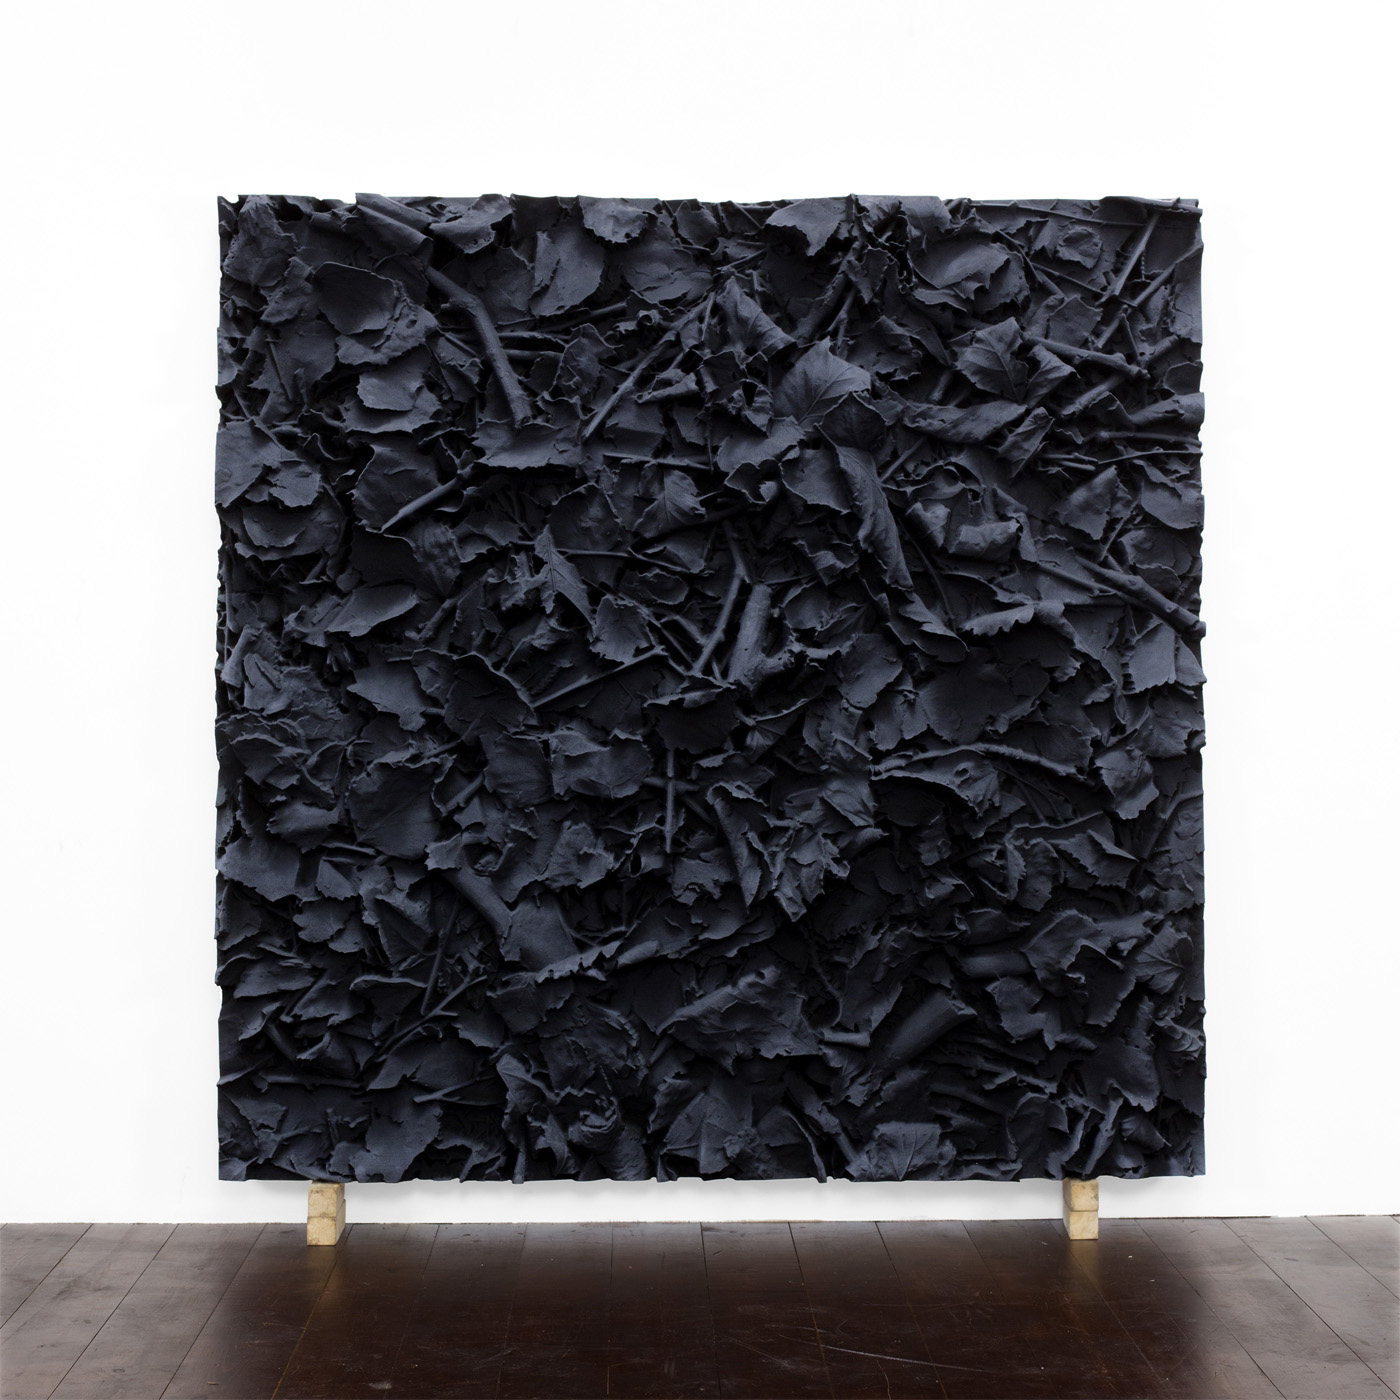 Juri Markkula, Desat Ground, 2016, Pigmented polyvinyl on polyuretan relief, 150 x 150 x 13 cm